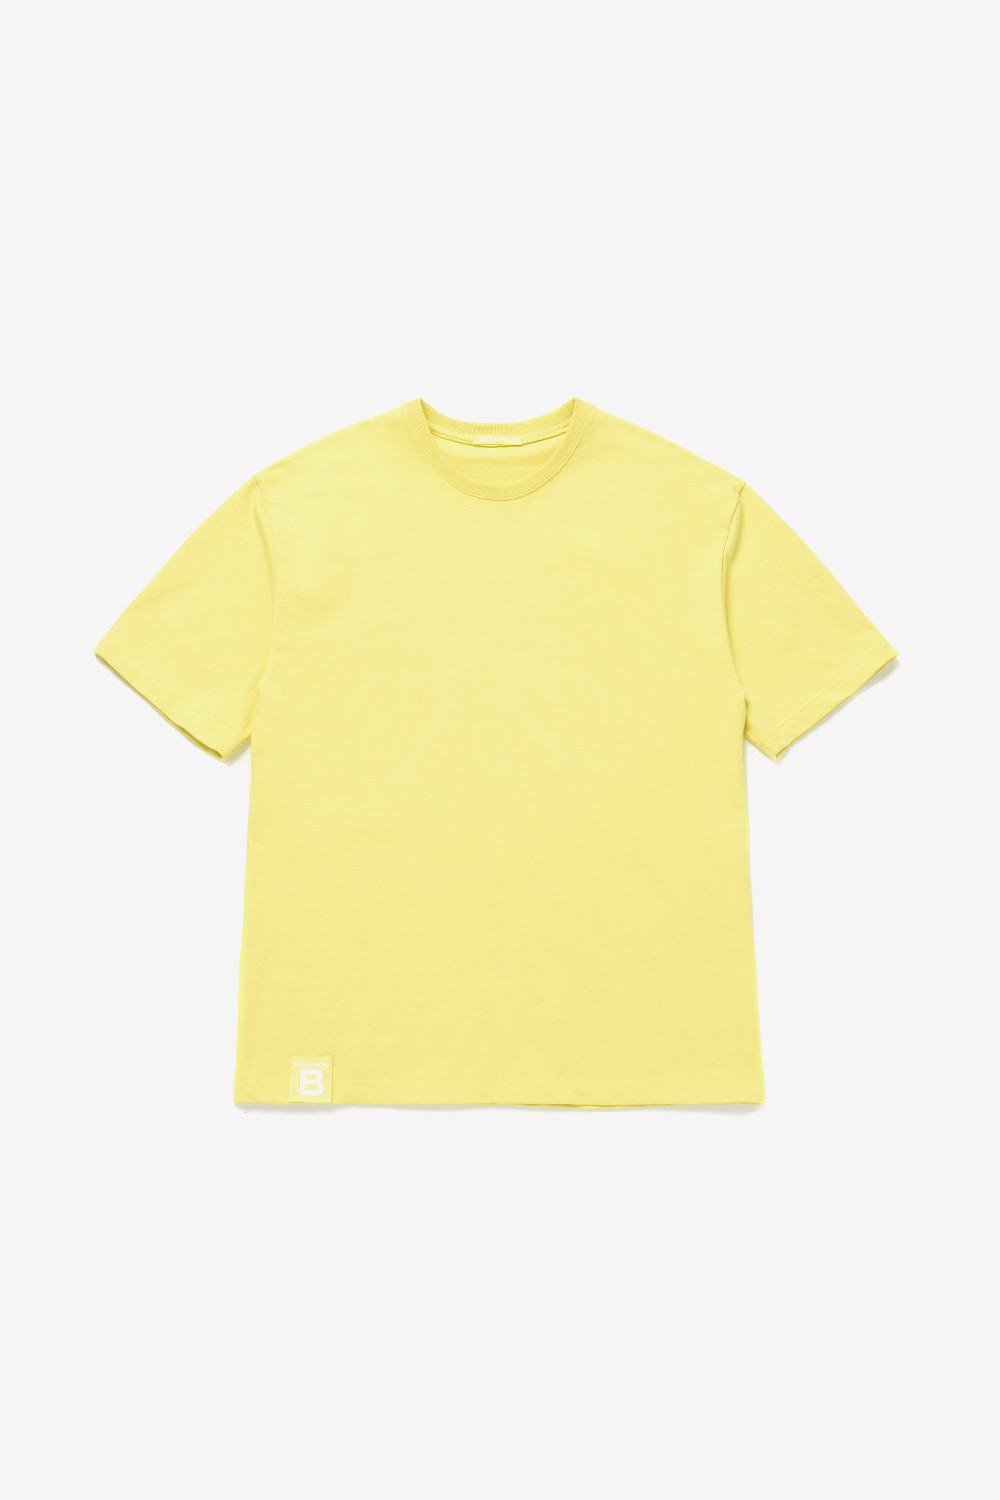 Original Label Over T(unisex)_Yellow BS0STS205YL00F